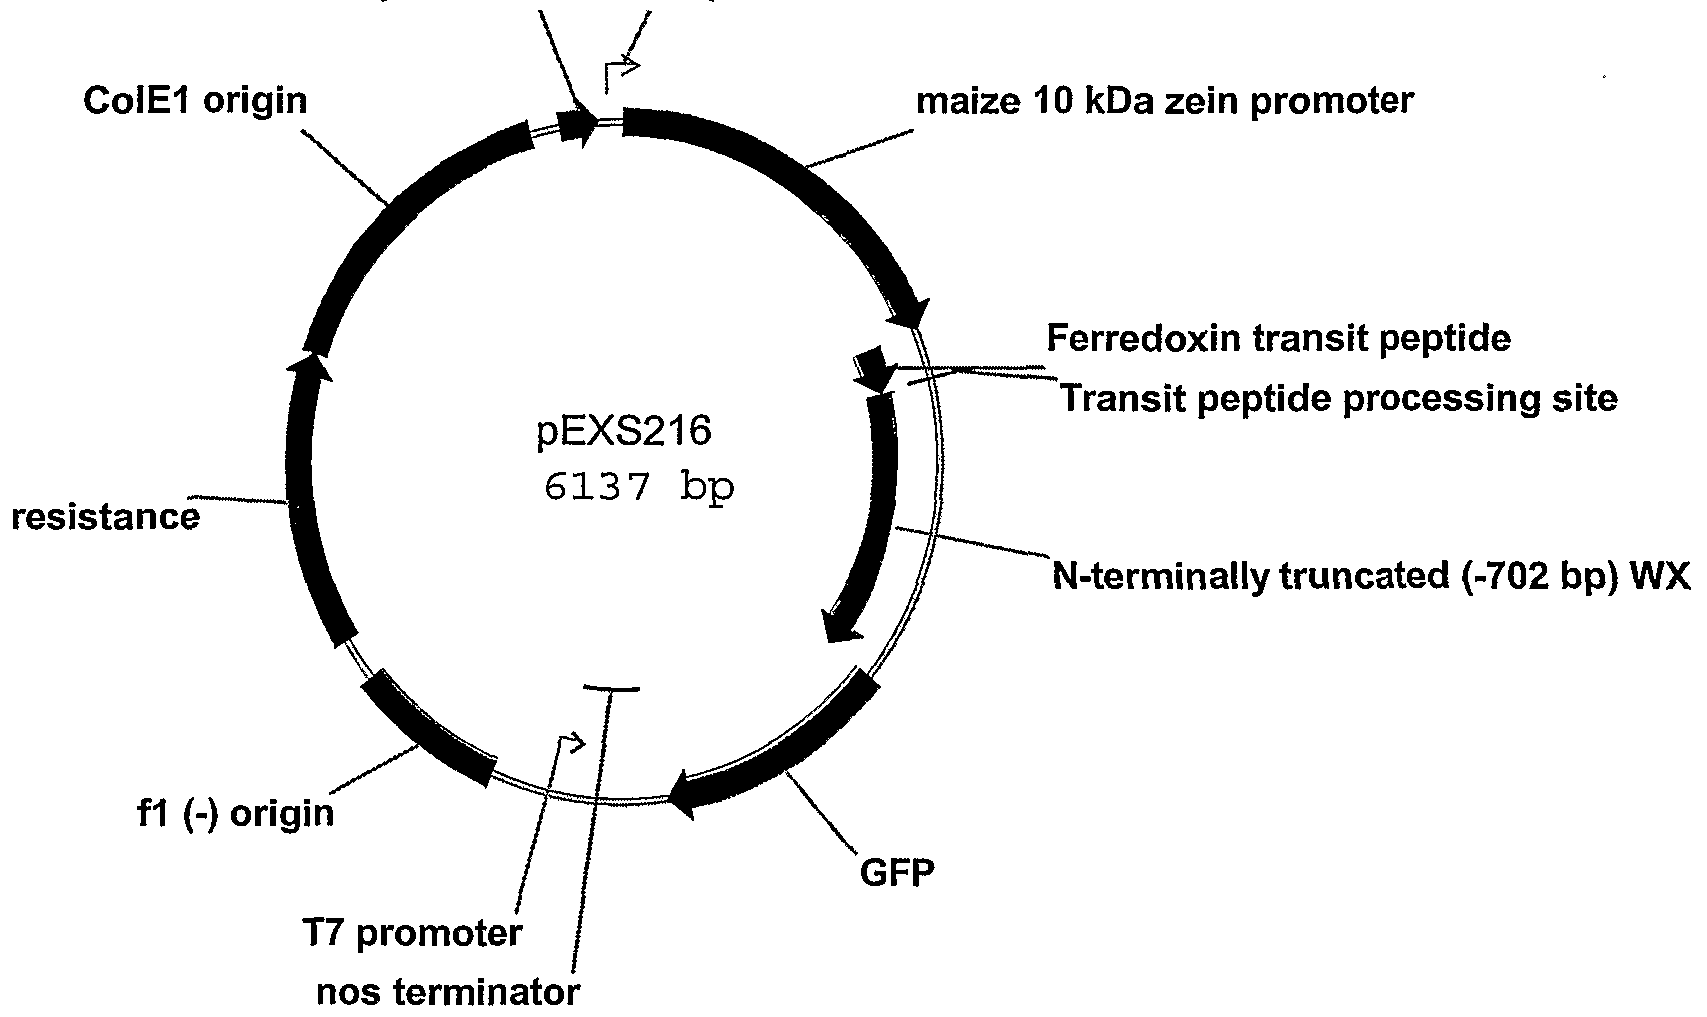 an analysis of the heart of fusion A single-chain antibody-cd39 fusion protein targeting  baker heart and diabetes  employing advanced clinically relevant methods of ultrasound analysis,.